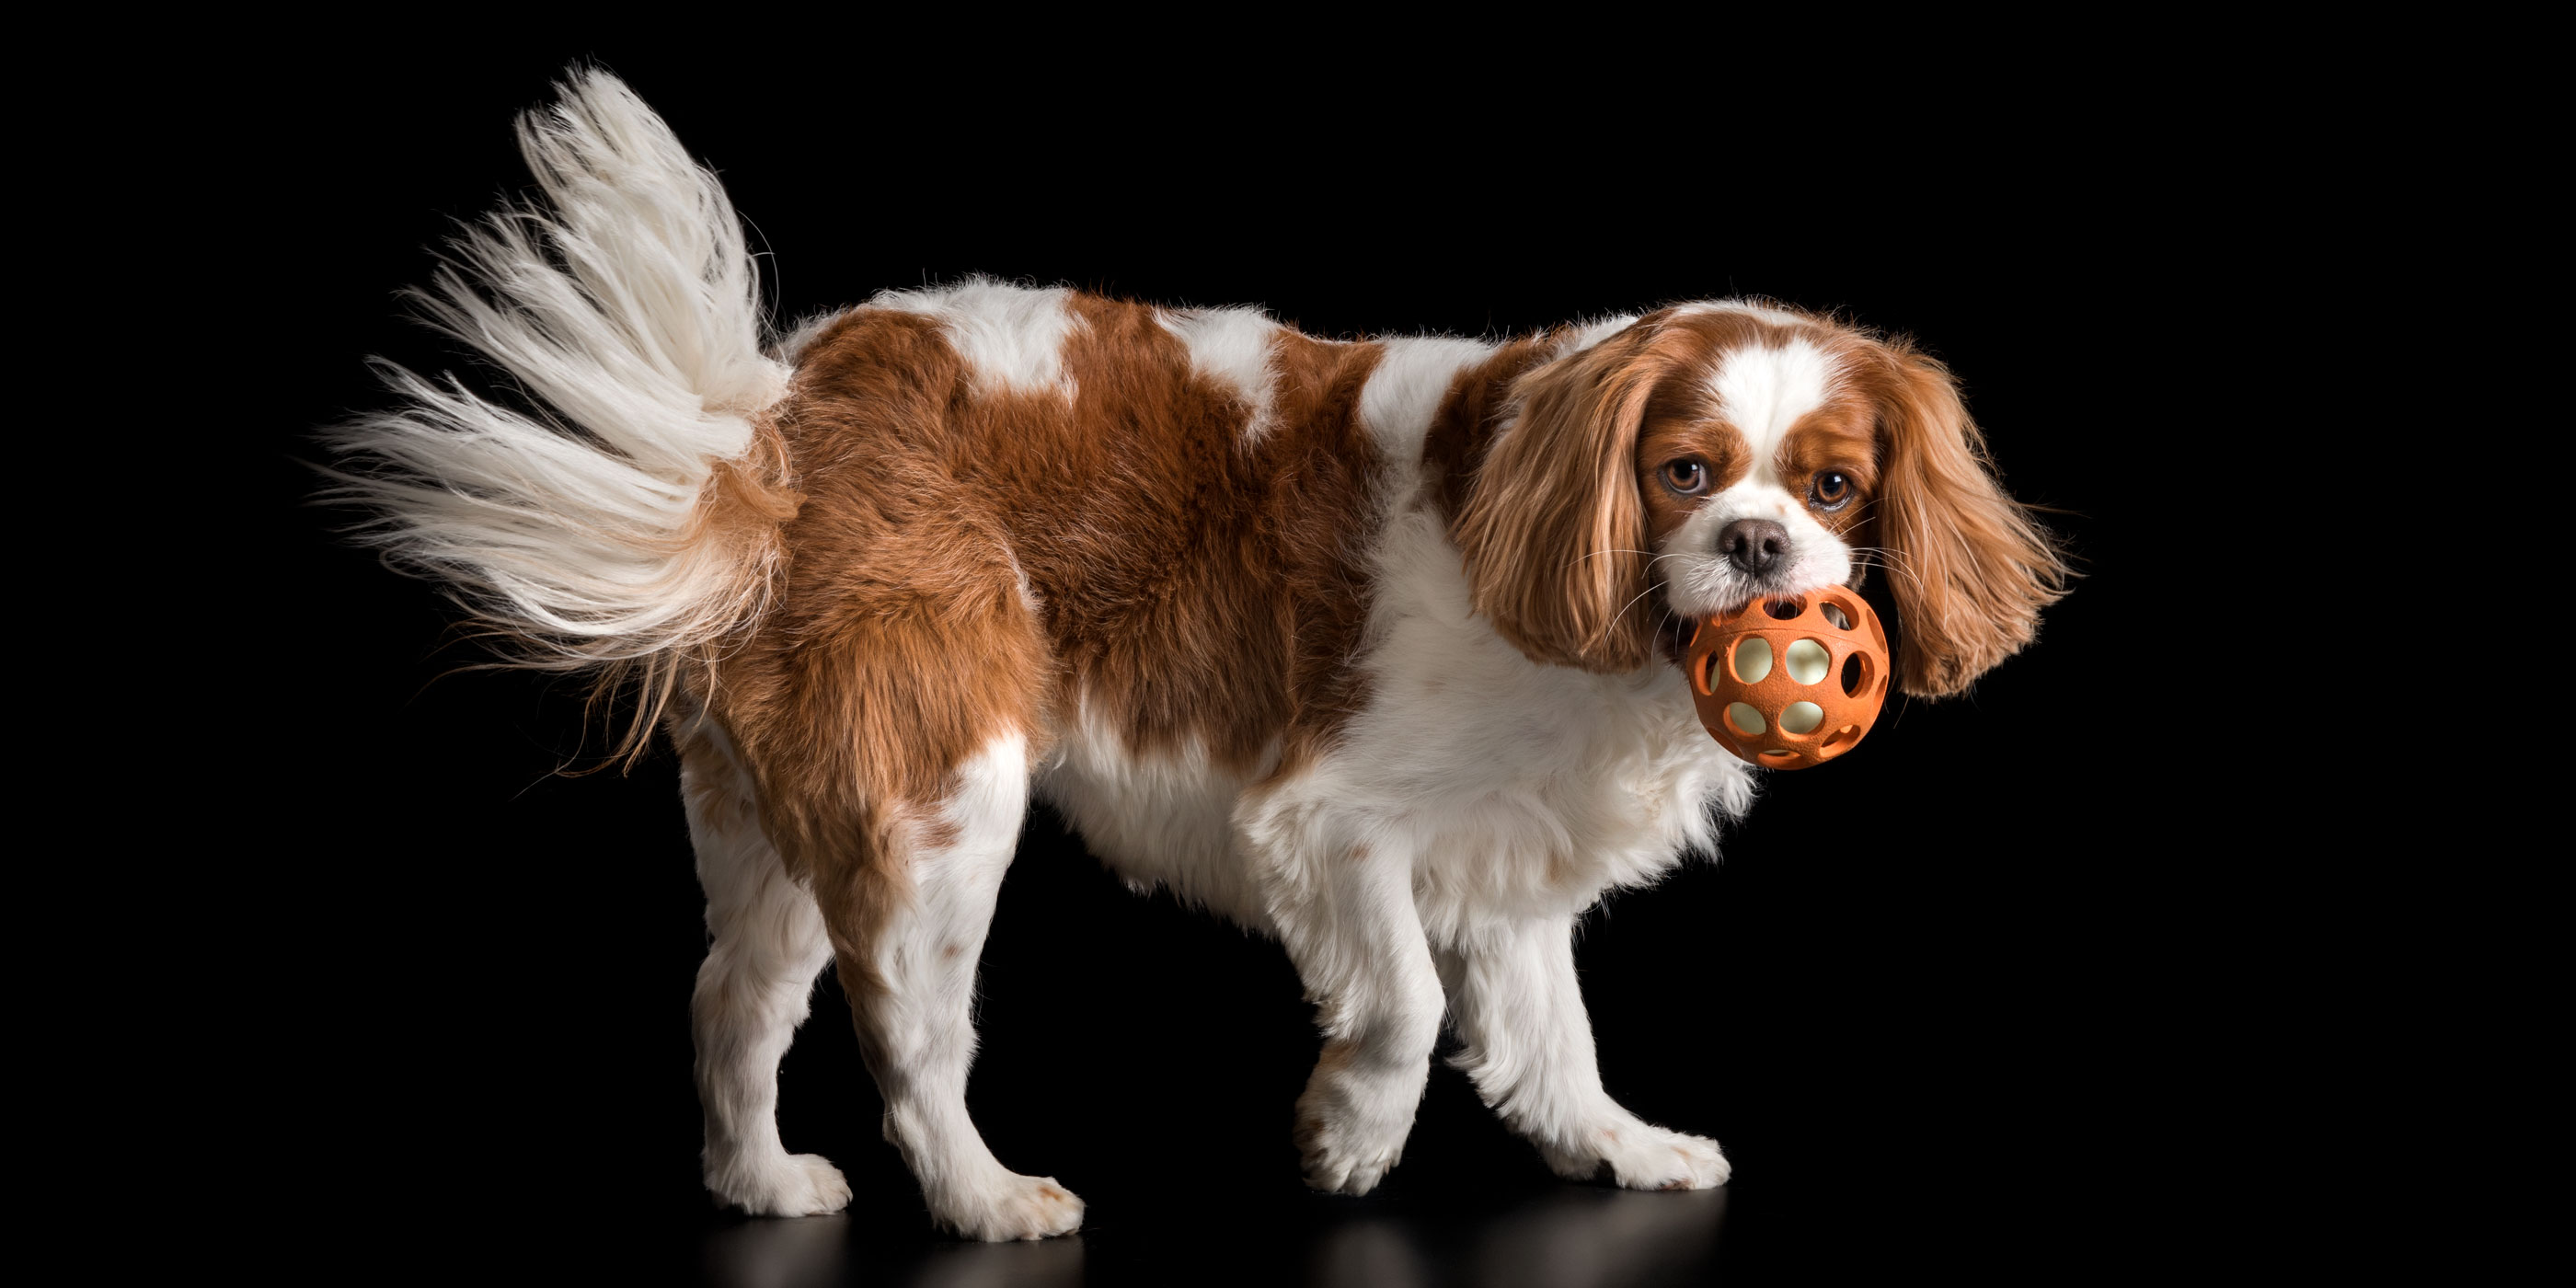 cavalier king charles playing with orange ball in mouth